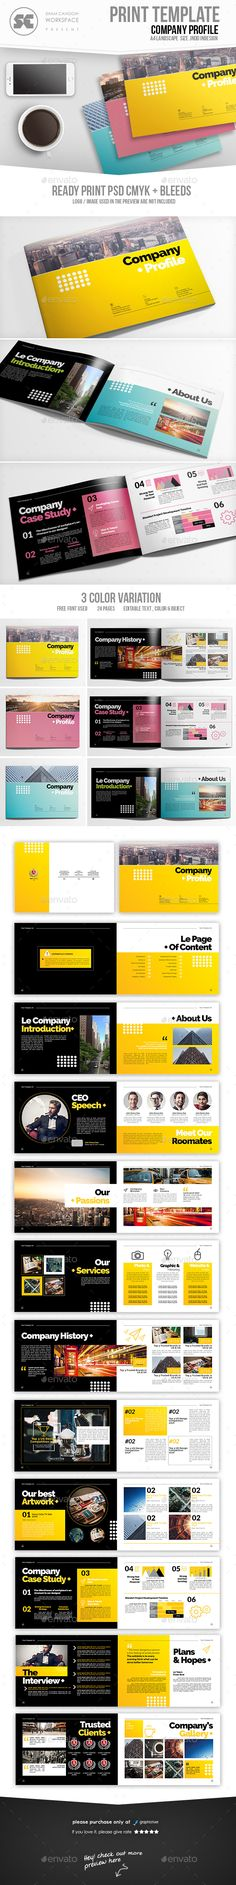 company profile template download company profile template free